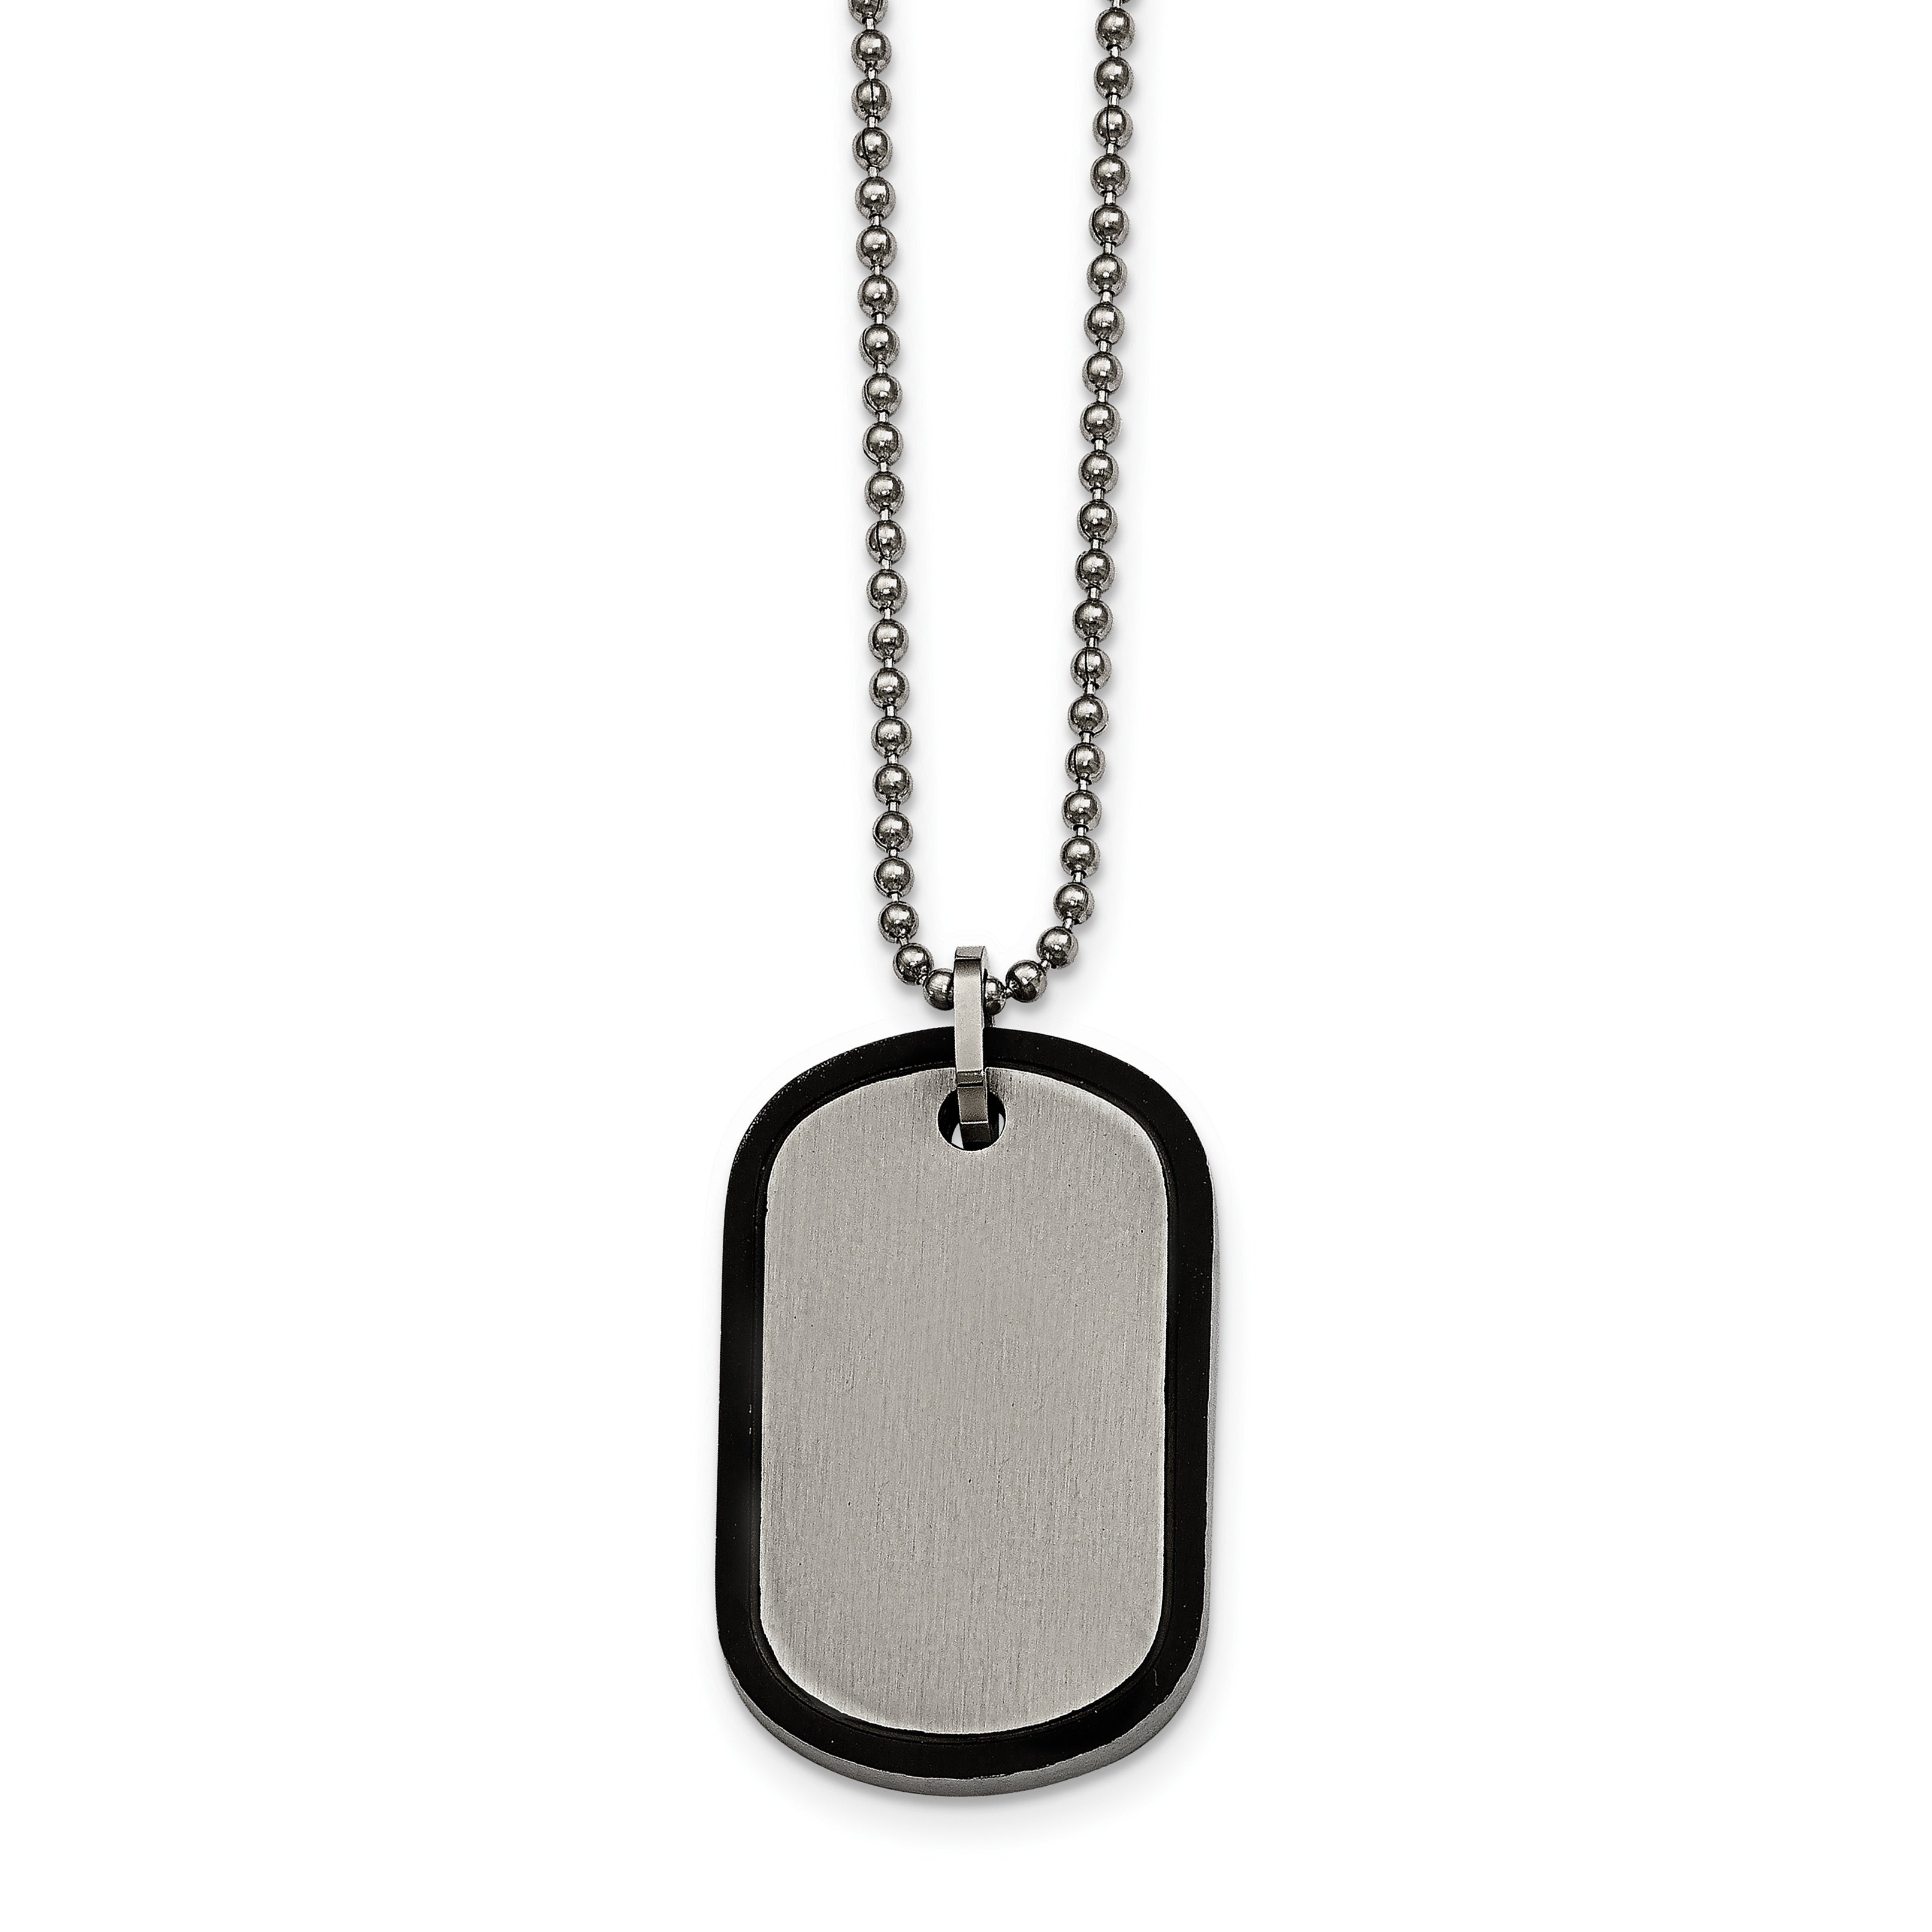 Jewelry Necklaces Necklace with Pendants Stainless Steel Brushed and Laser Cut Black IP Double Dogtag Necklace